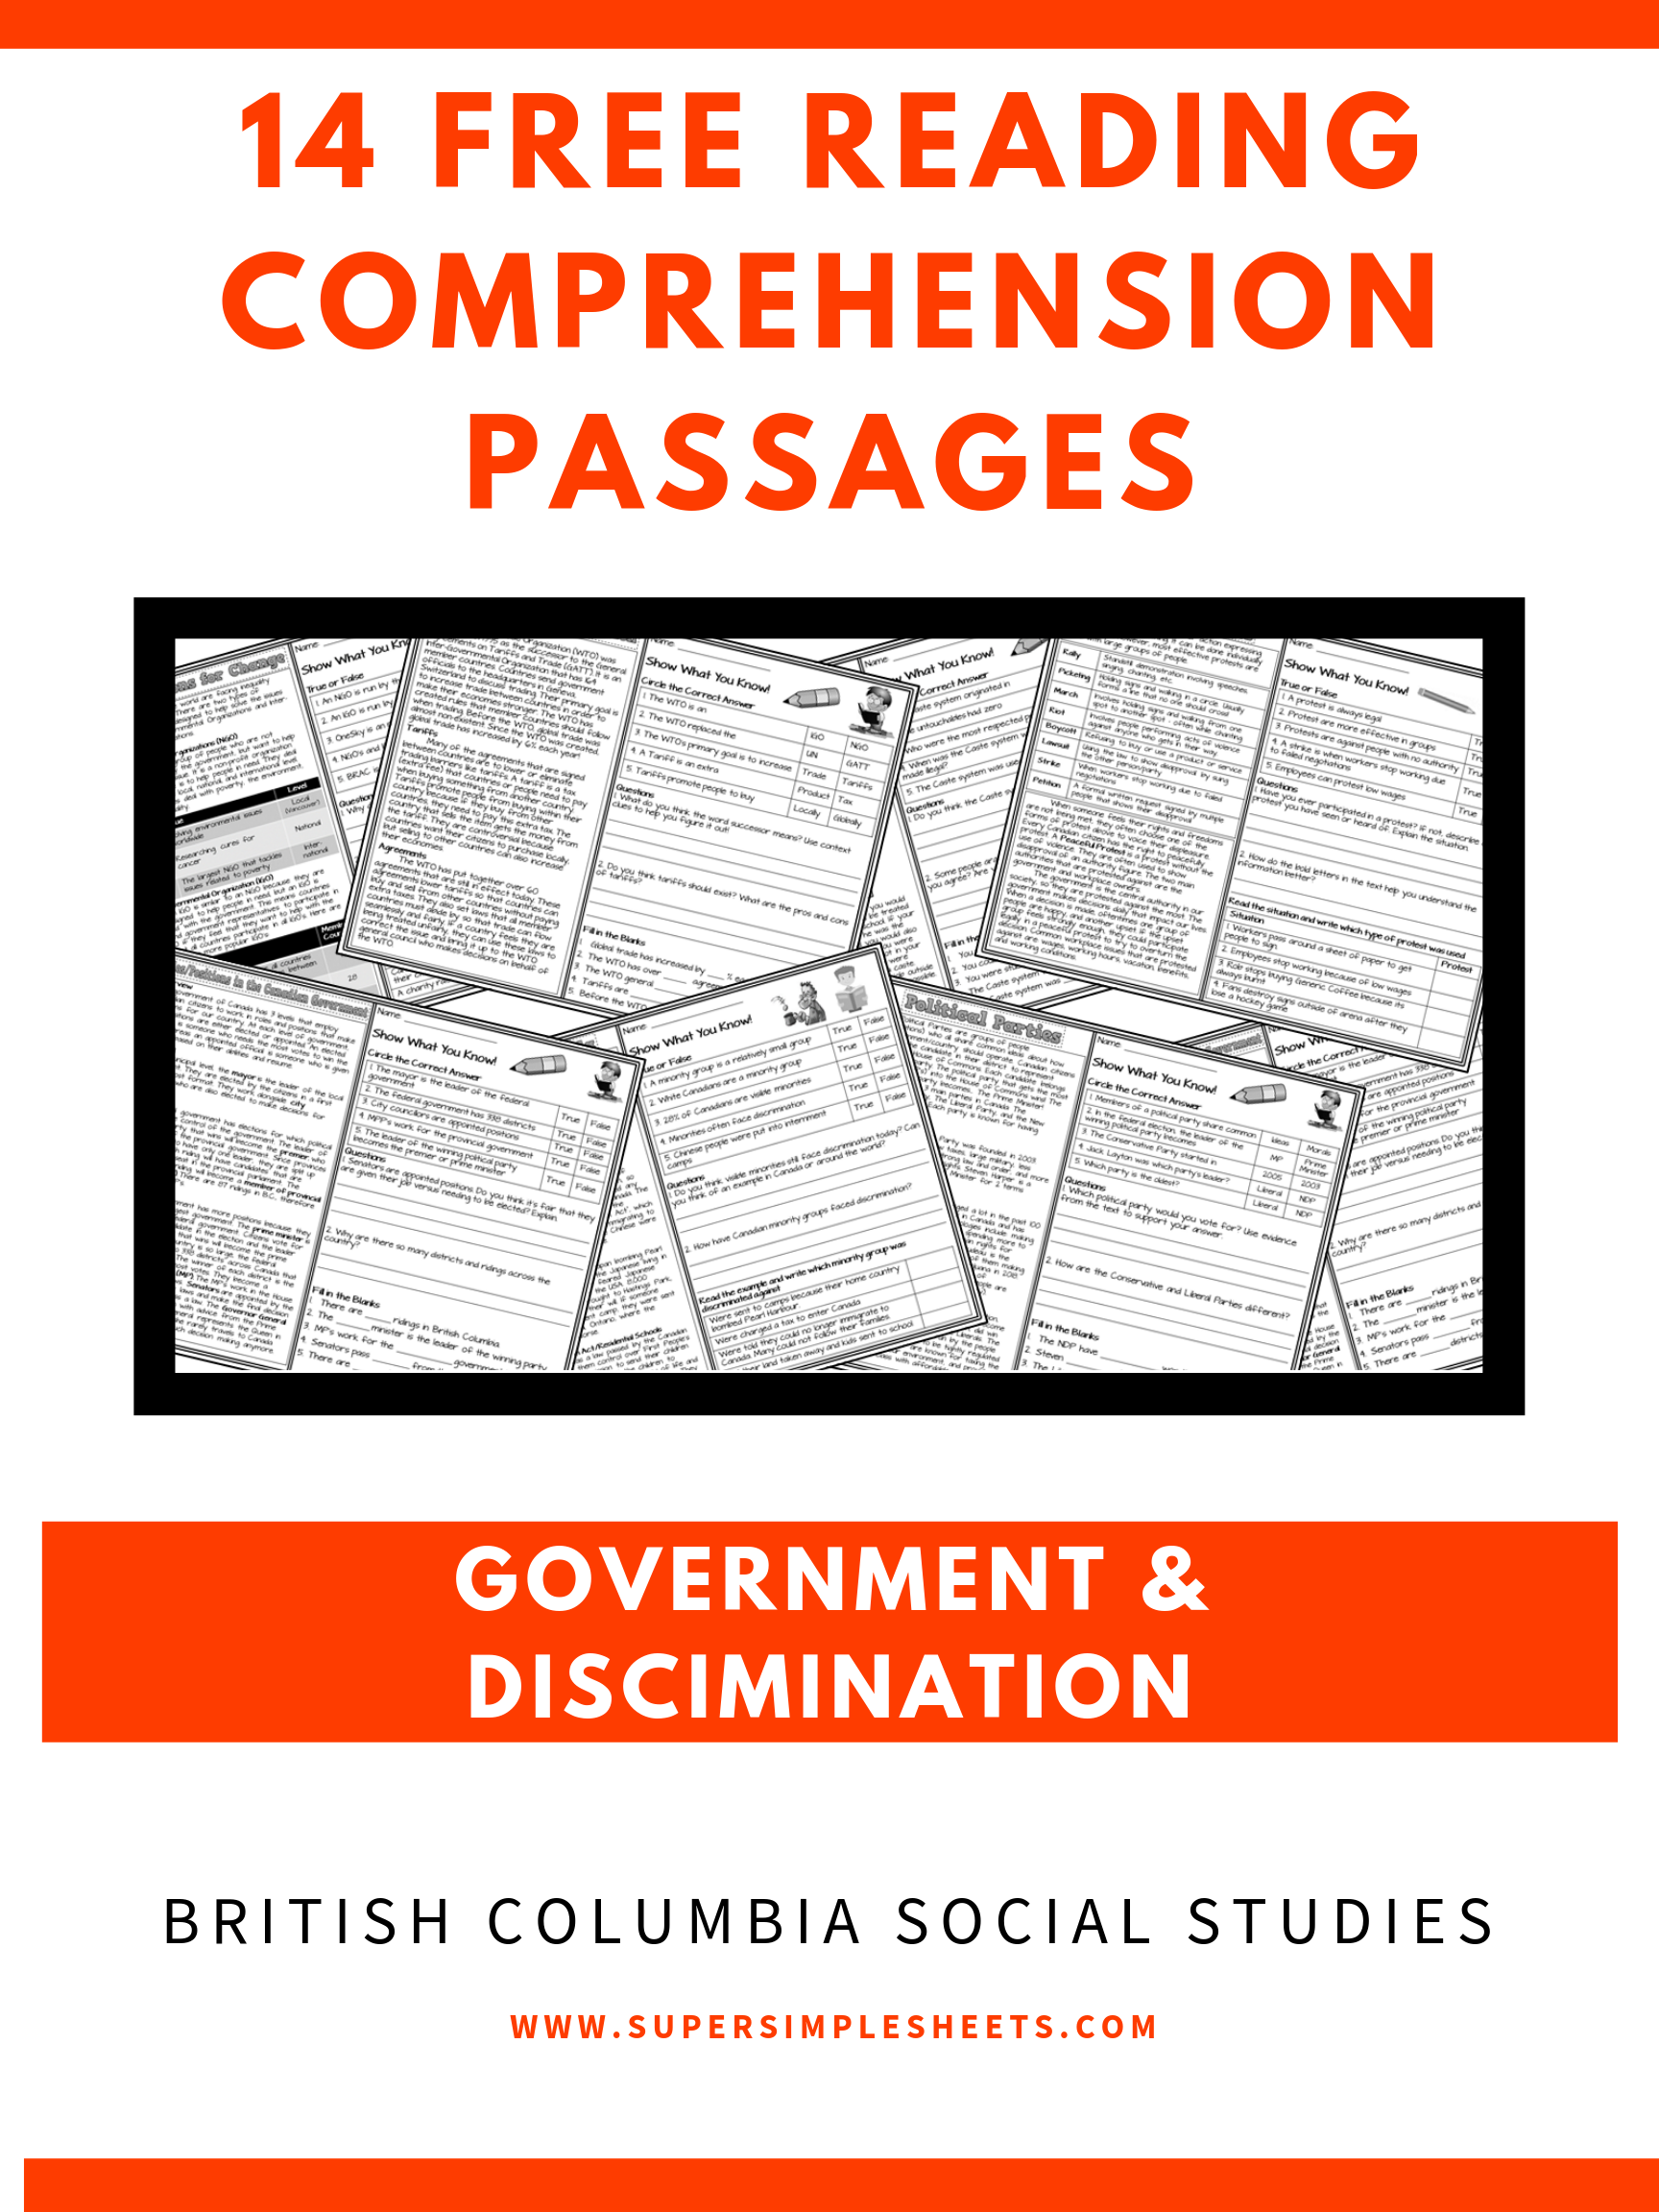 14 Free Reading Comprehension Passages For British